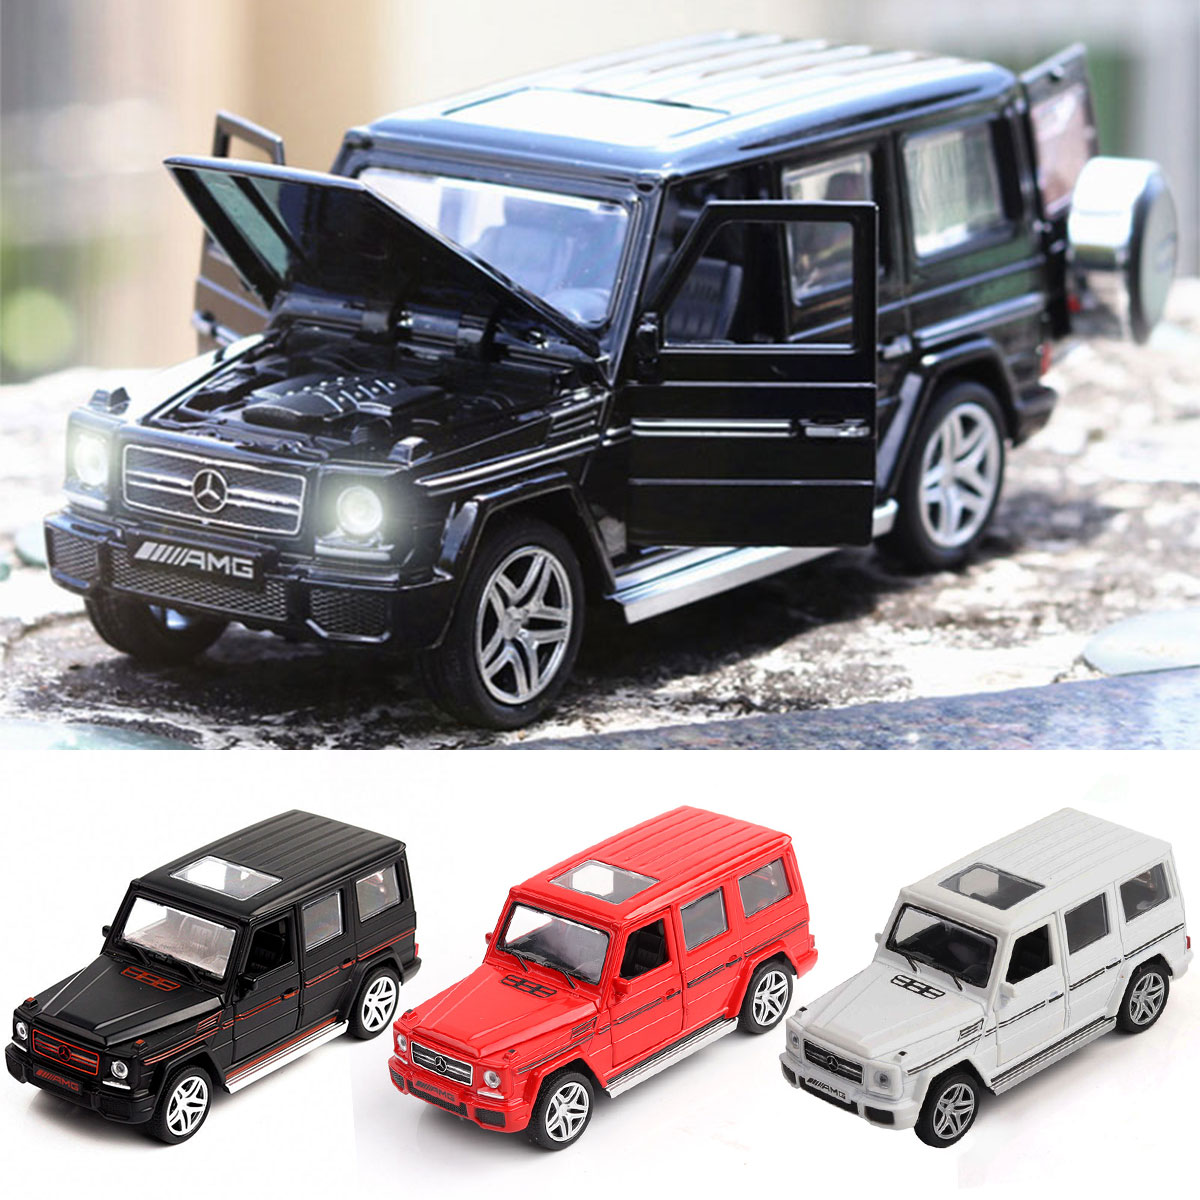 1:32 Alloy Vehicle Car Model Toy Car Toys For Children Pull Back Model Sound Light Boy Kids Gifts SUV For Mercedes Benz G65 AMG